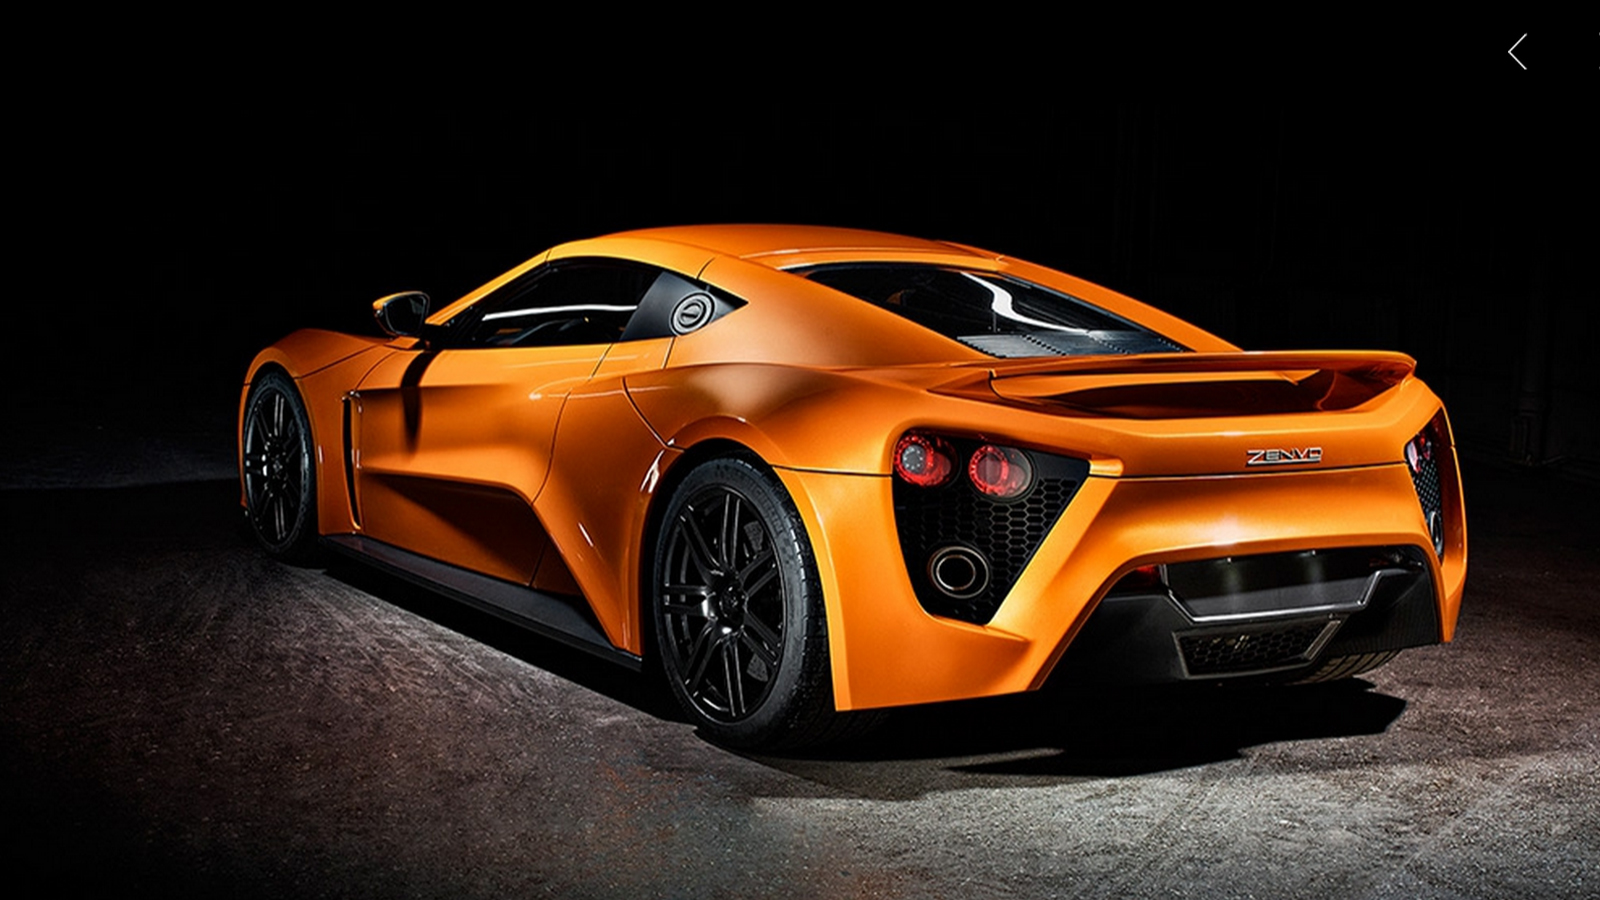 zenvo bringing two new crazy supercars to geneva